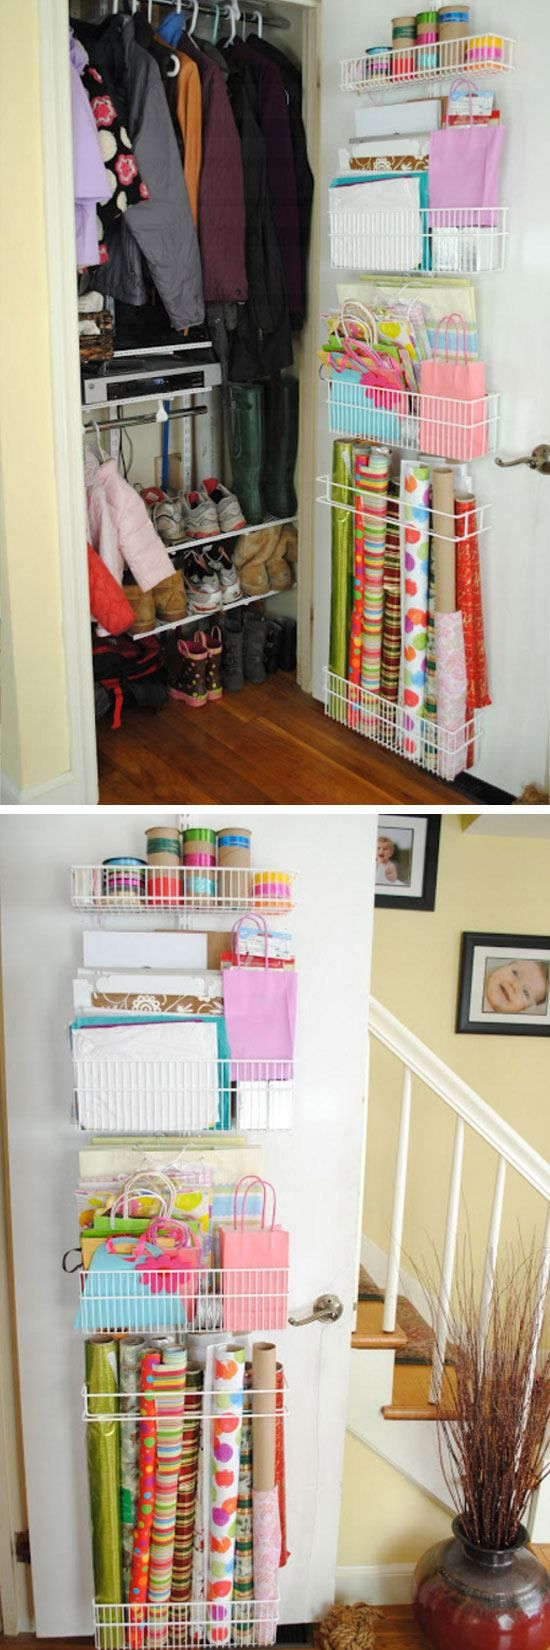 Closet + Wrapping Paper Organization   Easy Storage Ideas for Small Spaces   DIY Organization Ideas for the Home